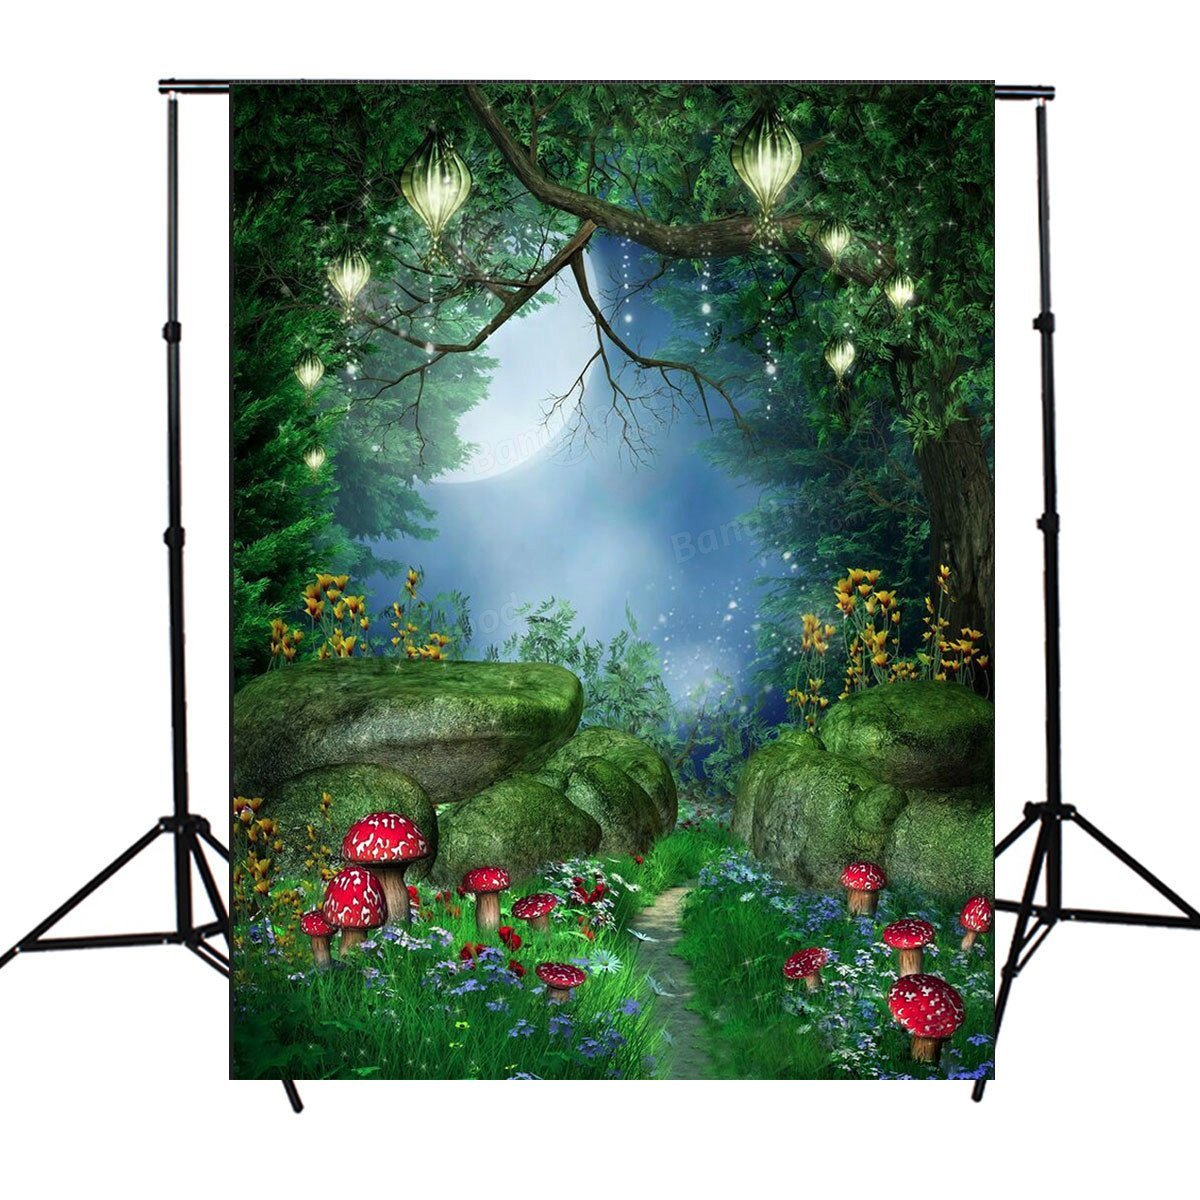 Fairy Tale World Green Forest Photography Background Cloth Backdrop Photo Props - Studio Equipments Backdrops - 1 x Wireless Controller, 1 x USB Cable